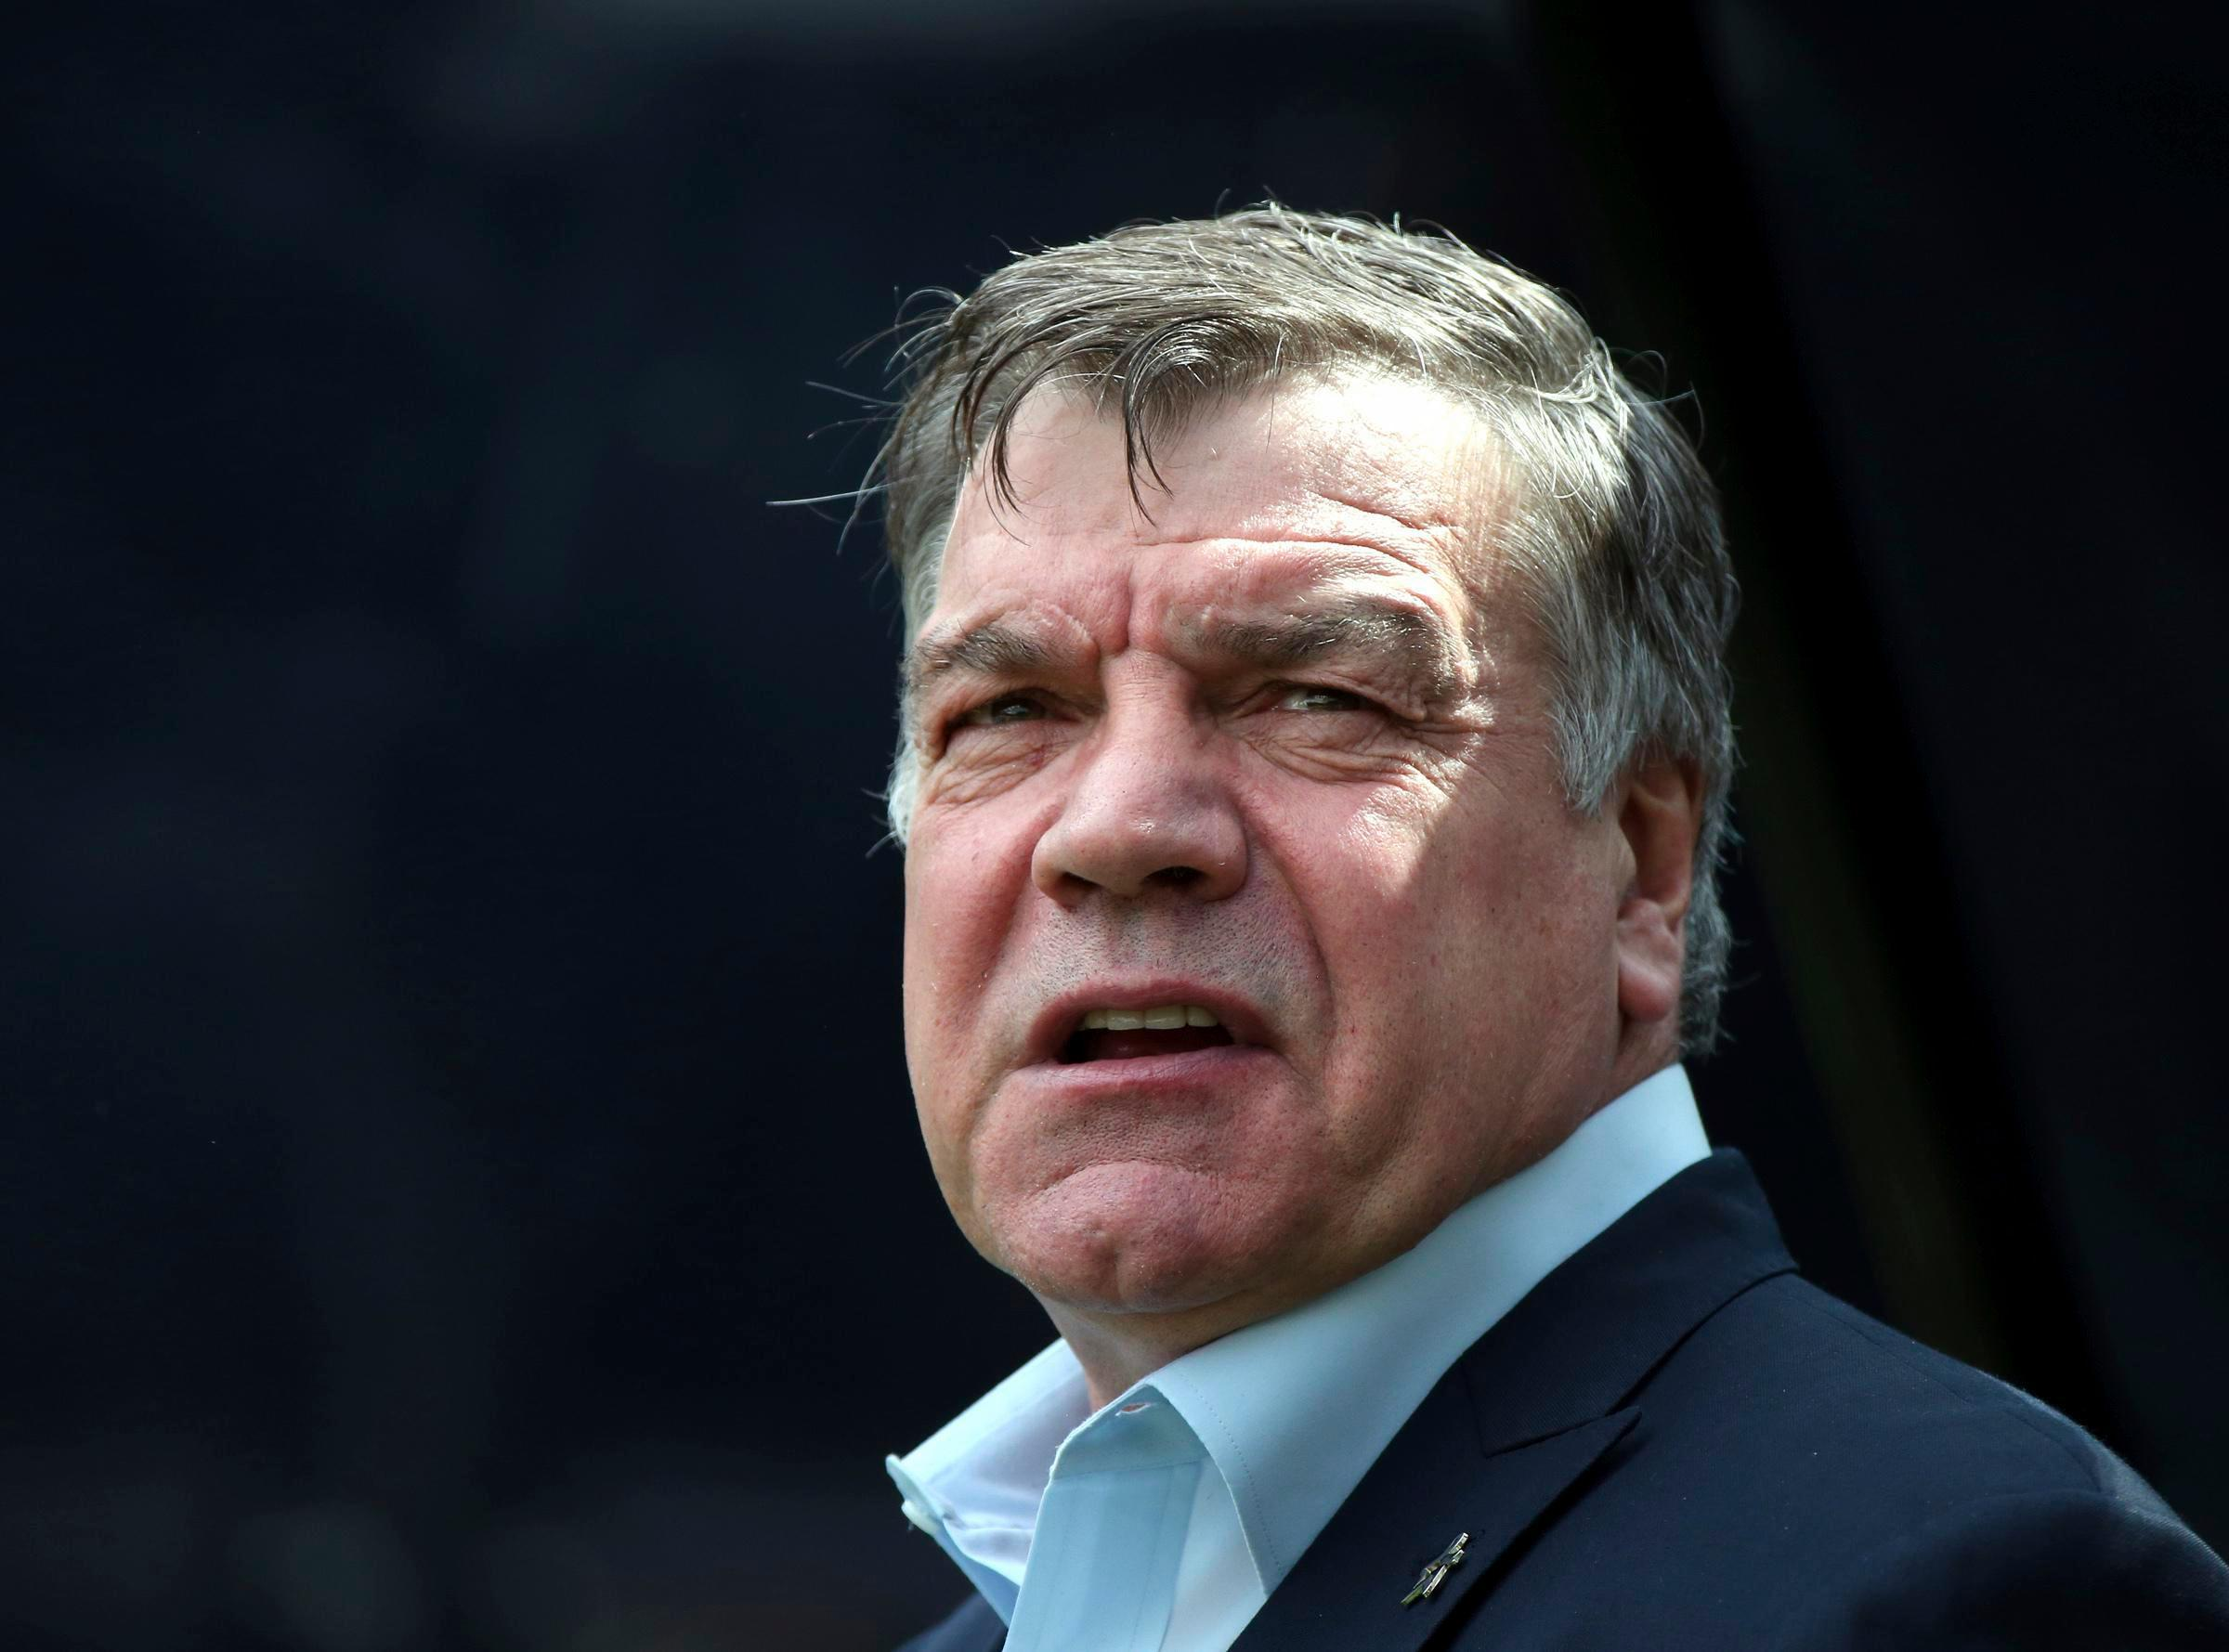 Allardyce starts at Everton with 2-0 win vs Huddersfield